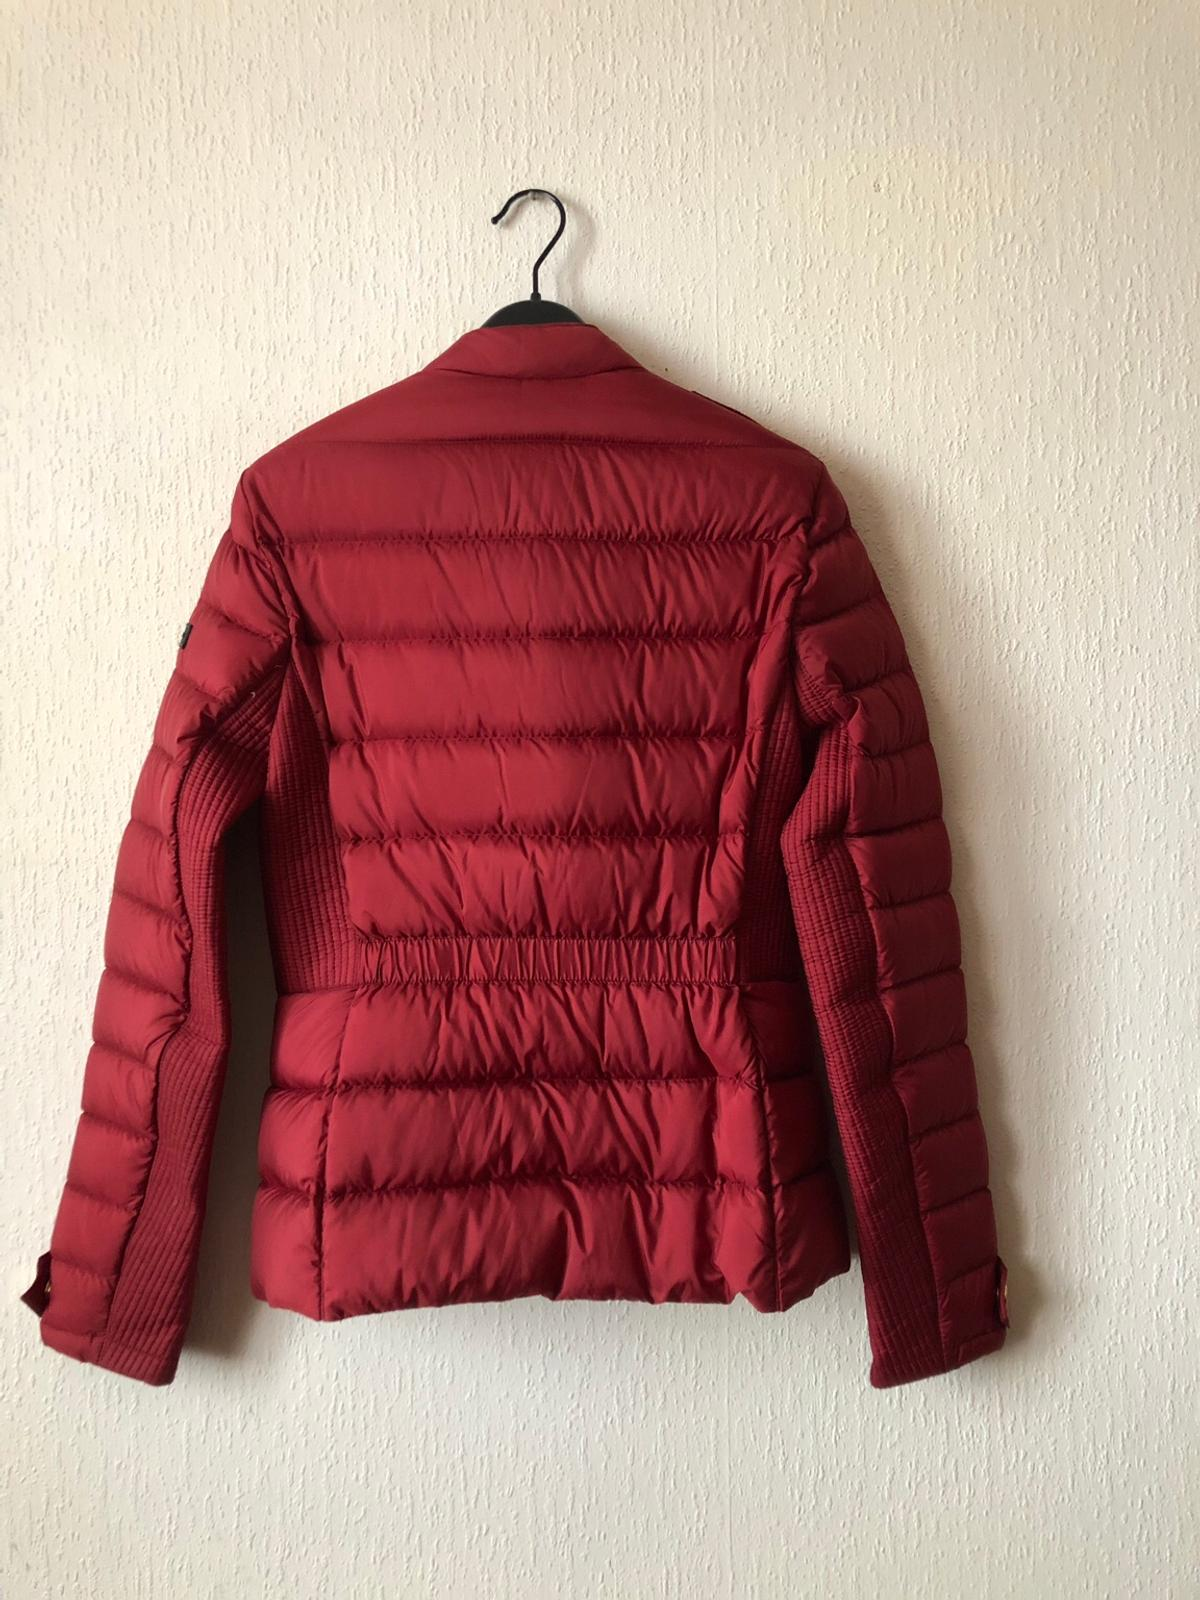 Burberry Brit Quilted Puffer Jacket In W2 Westminster For